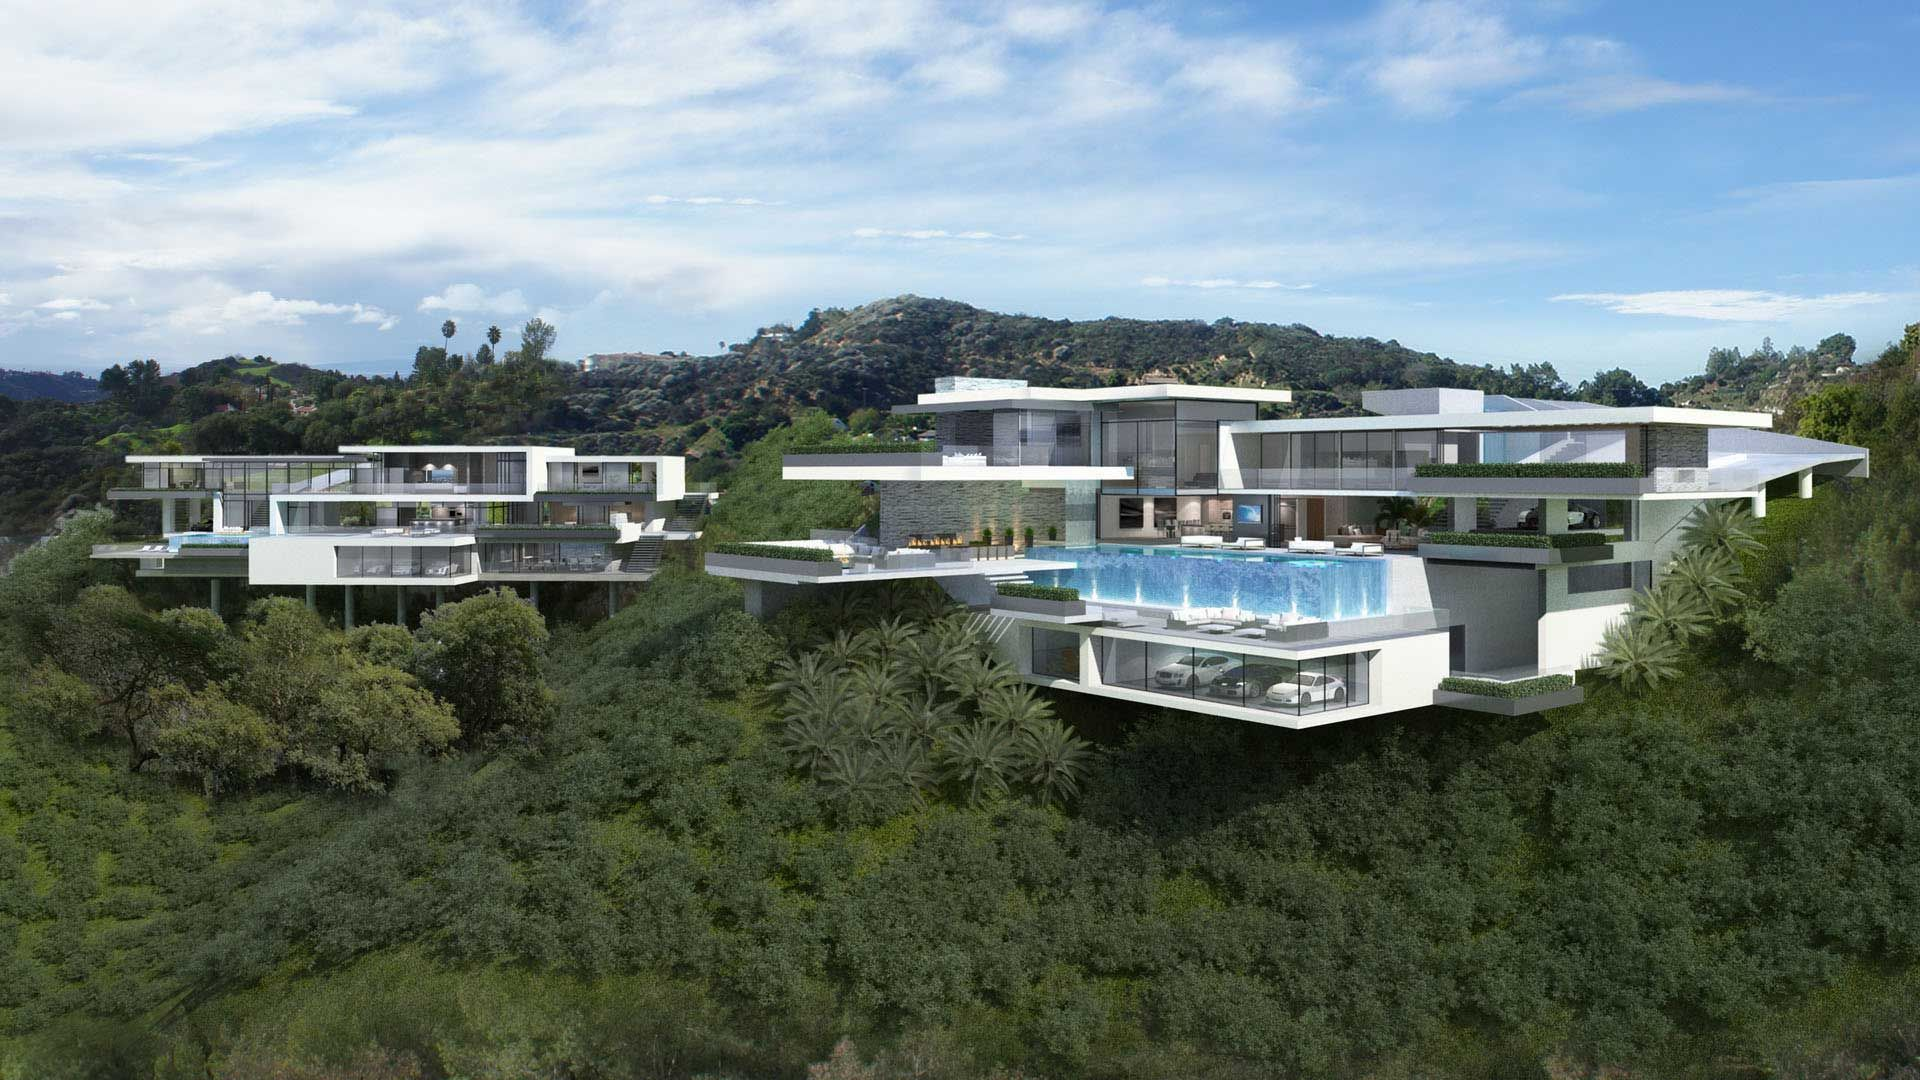 Luxury Ultramodern Mansions on Sunset Plaza Drive in Los ngeles ... - ^